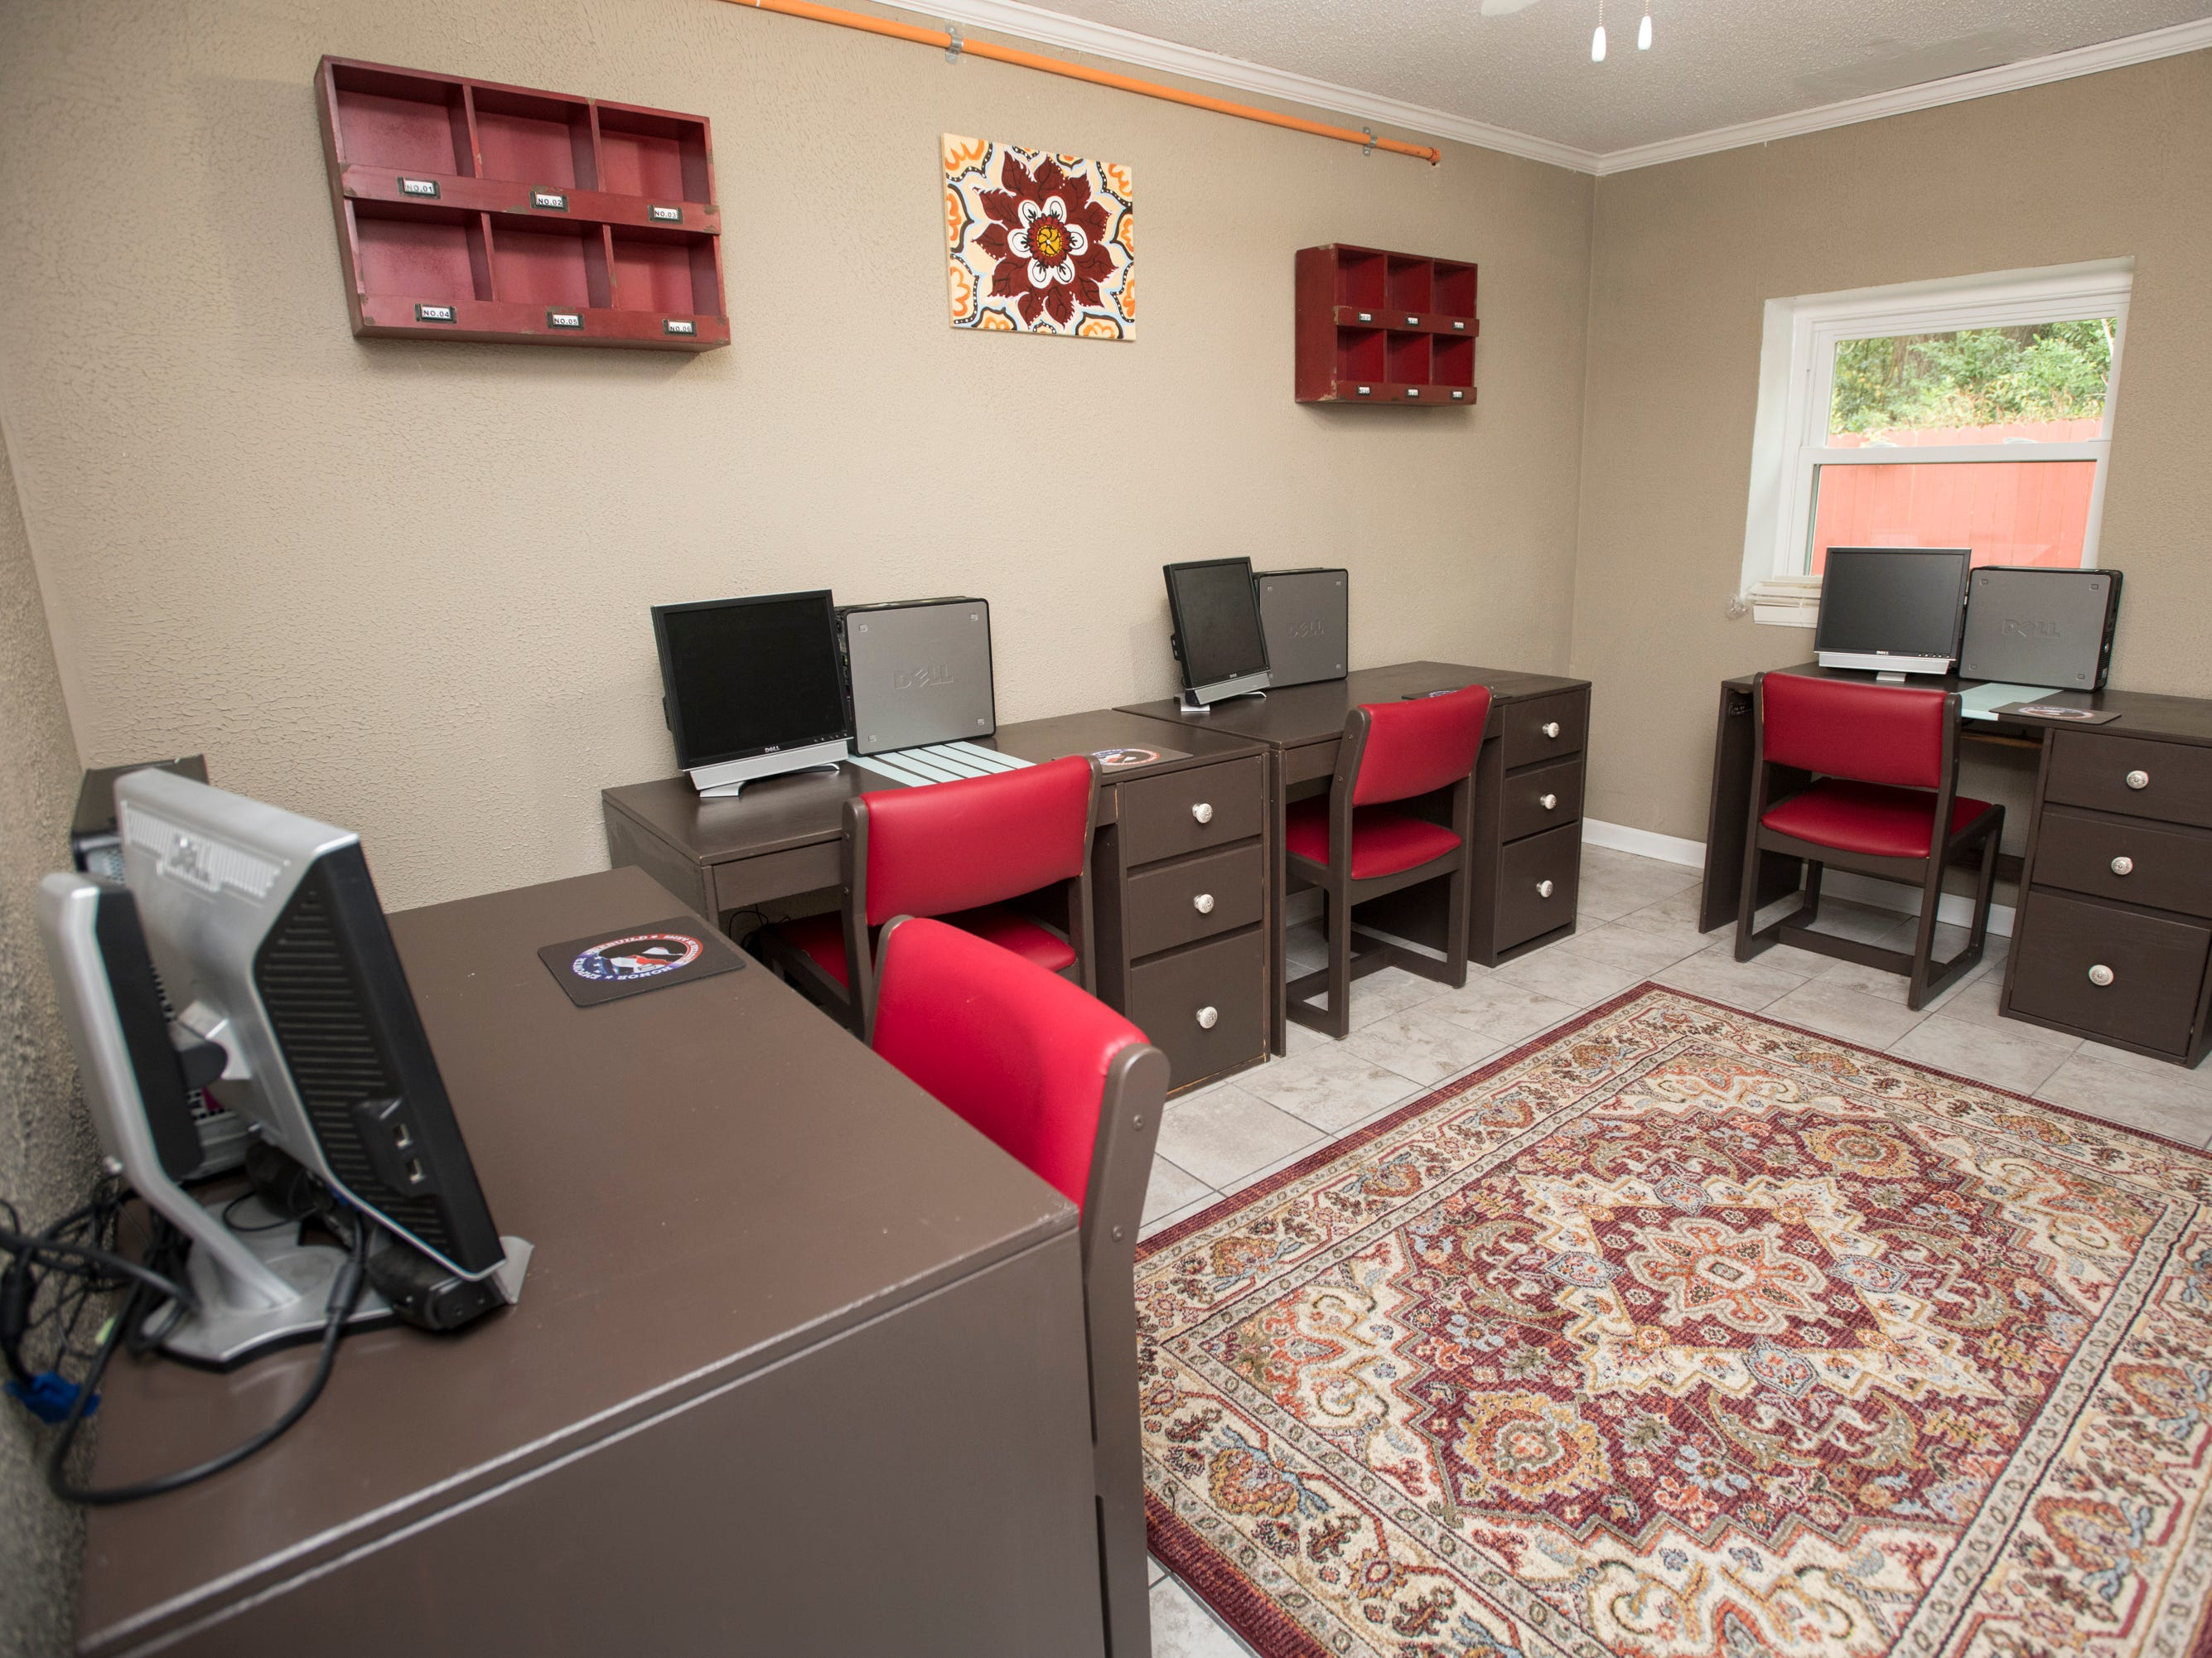 The computer room at the HER Foundation Faith House on West Fairfield Drive in Pensacola on Wednesday, November 7, 2018.  This room was furnished and decorated by the Escambia County School District.